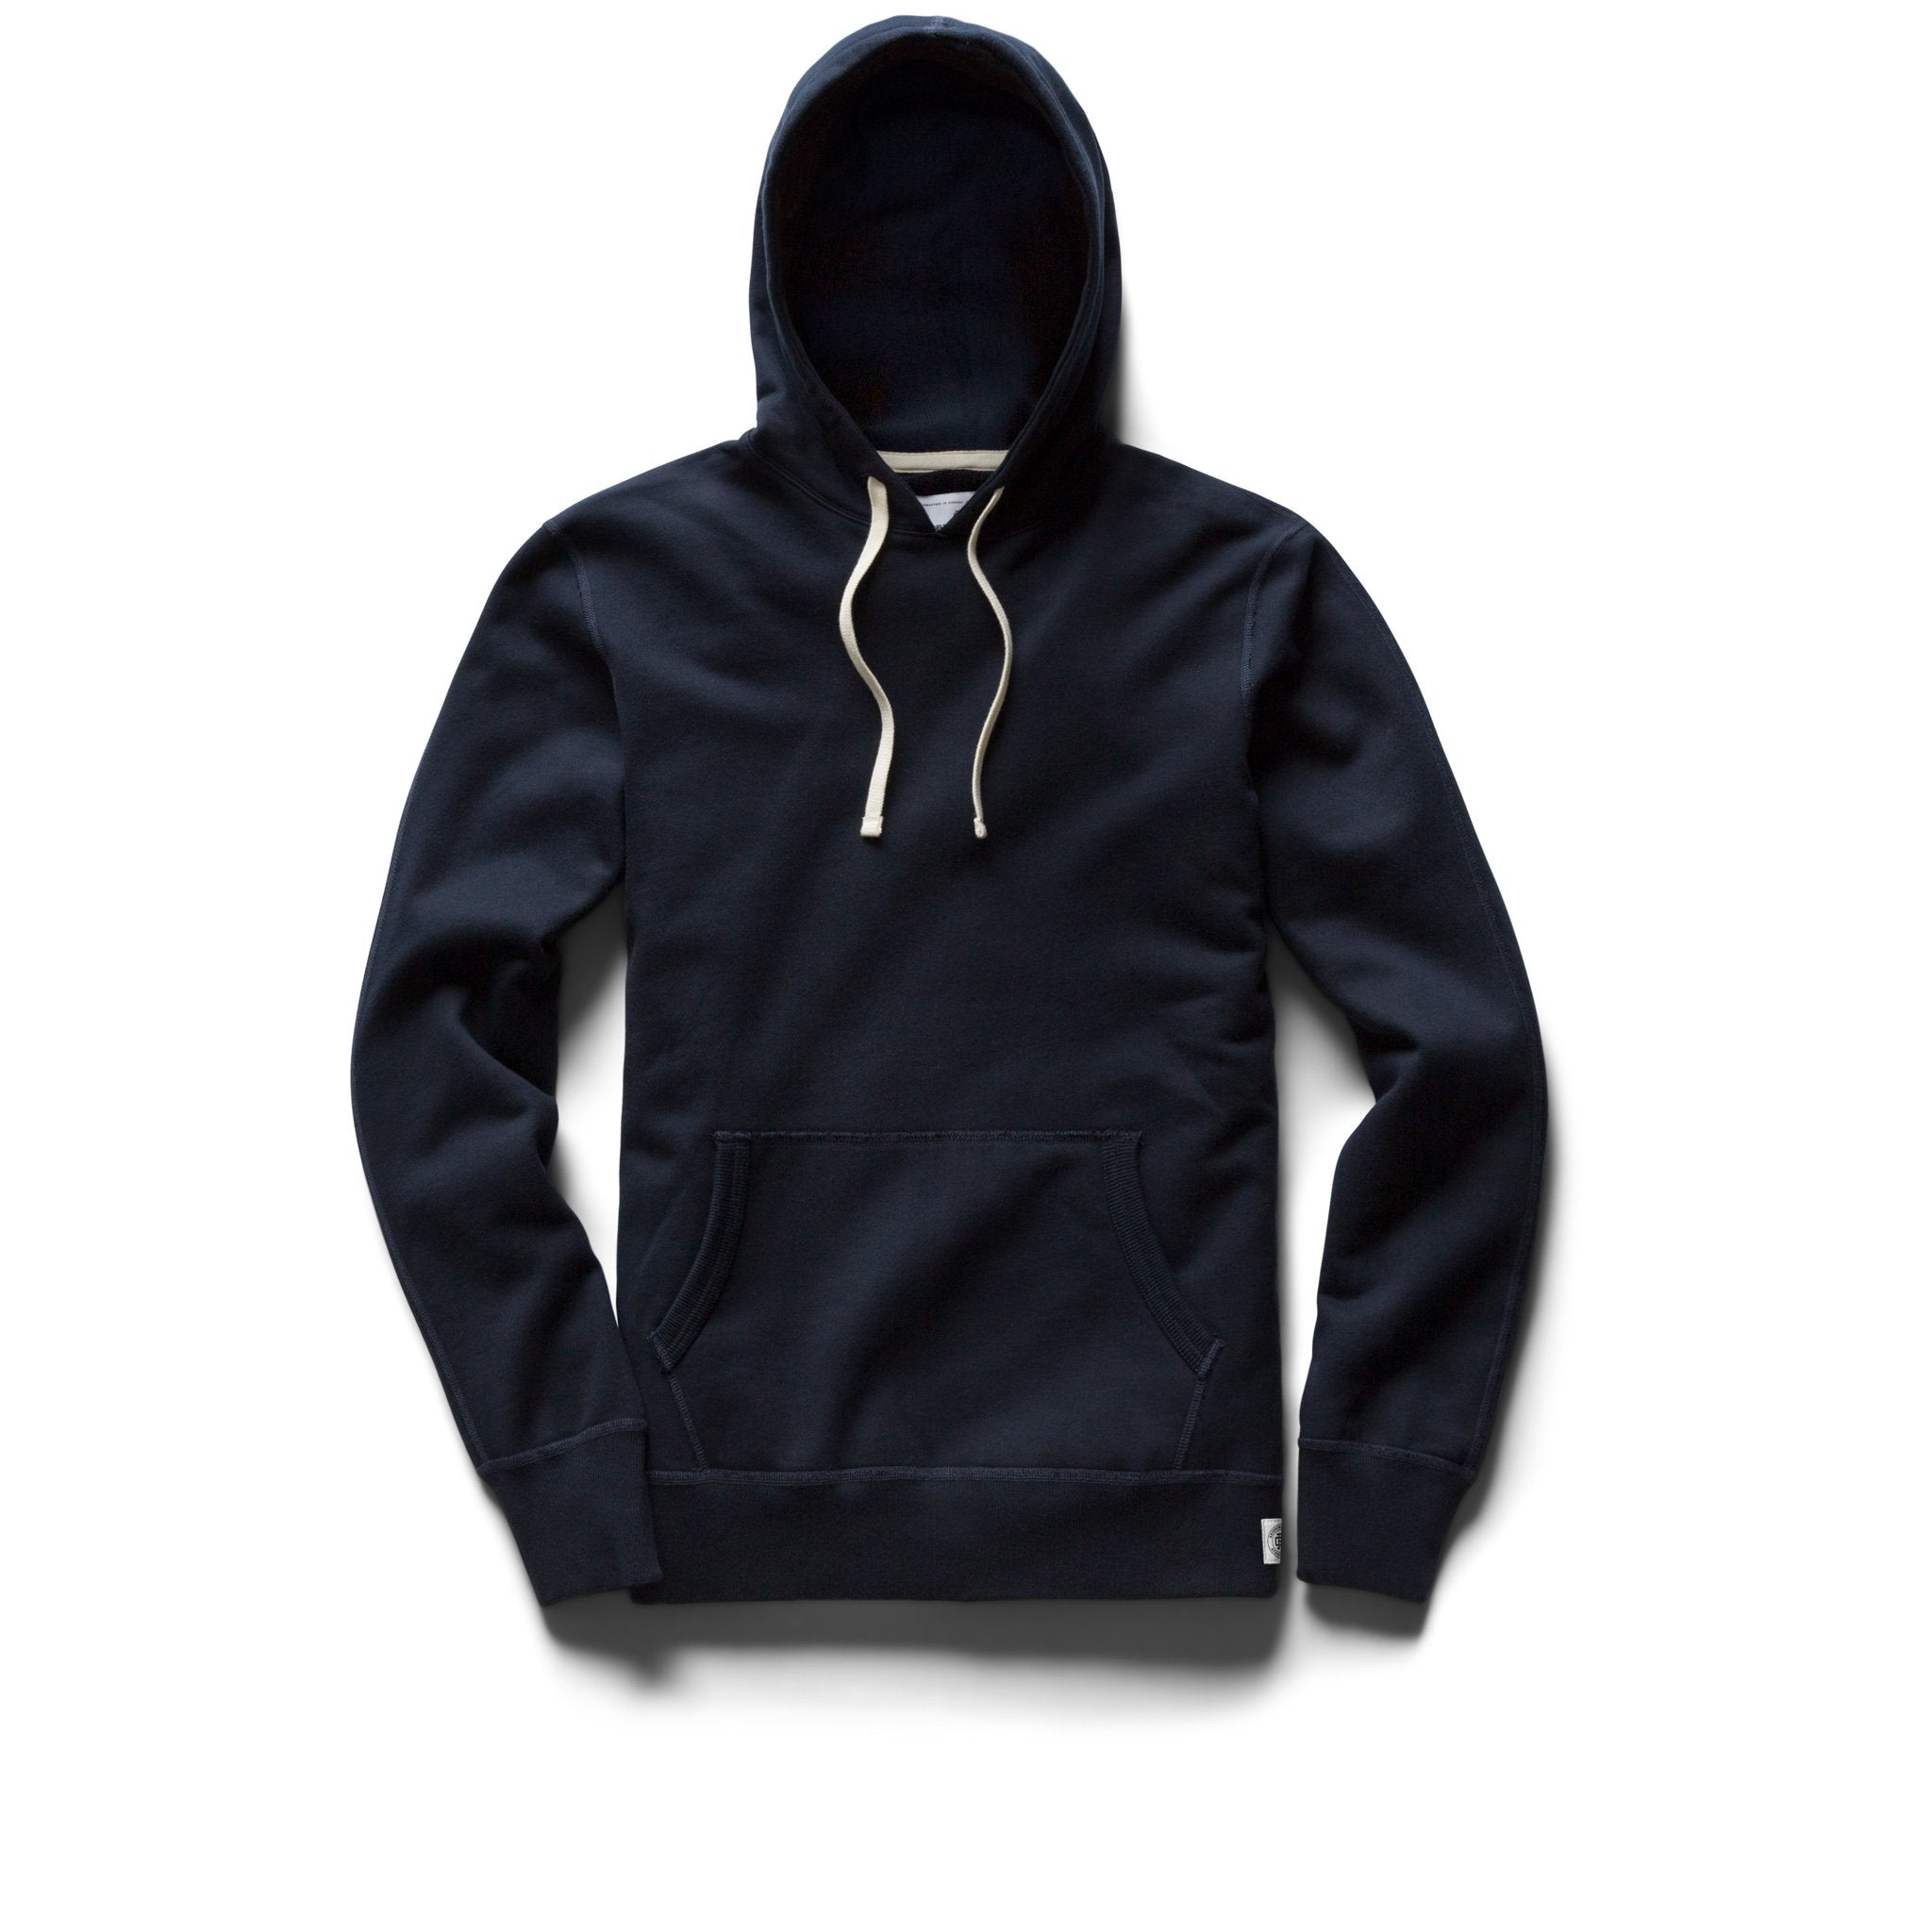 REIGNING CHAMP M'S HOODIES NAVY XL PULLOVER HOODIE - MIDWEIGHT TERRY